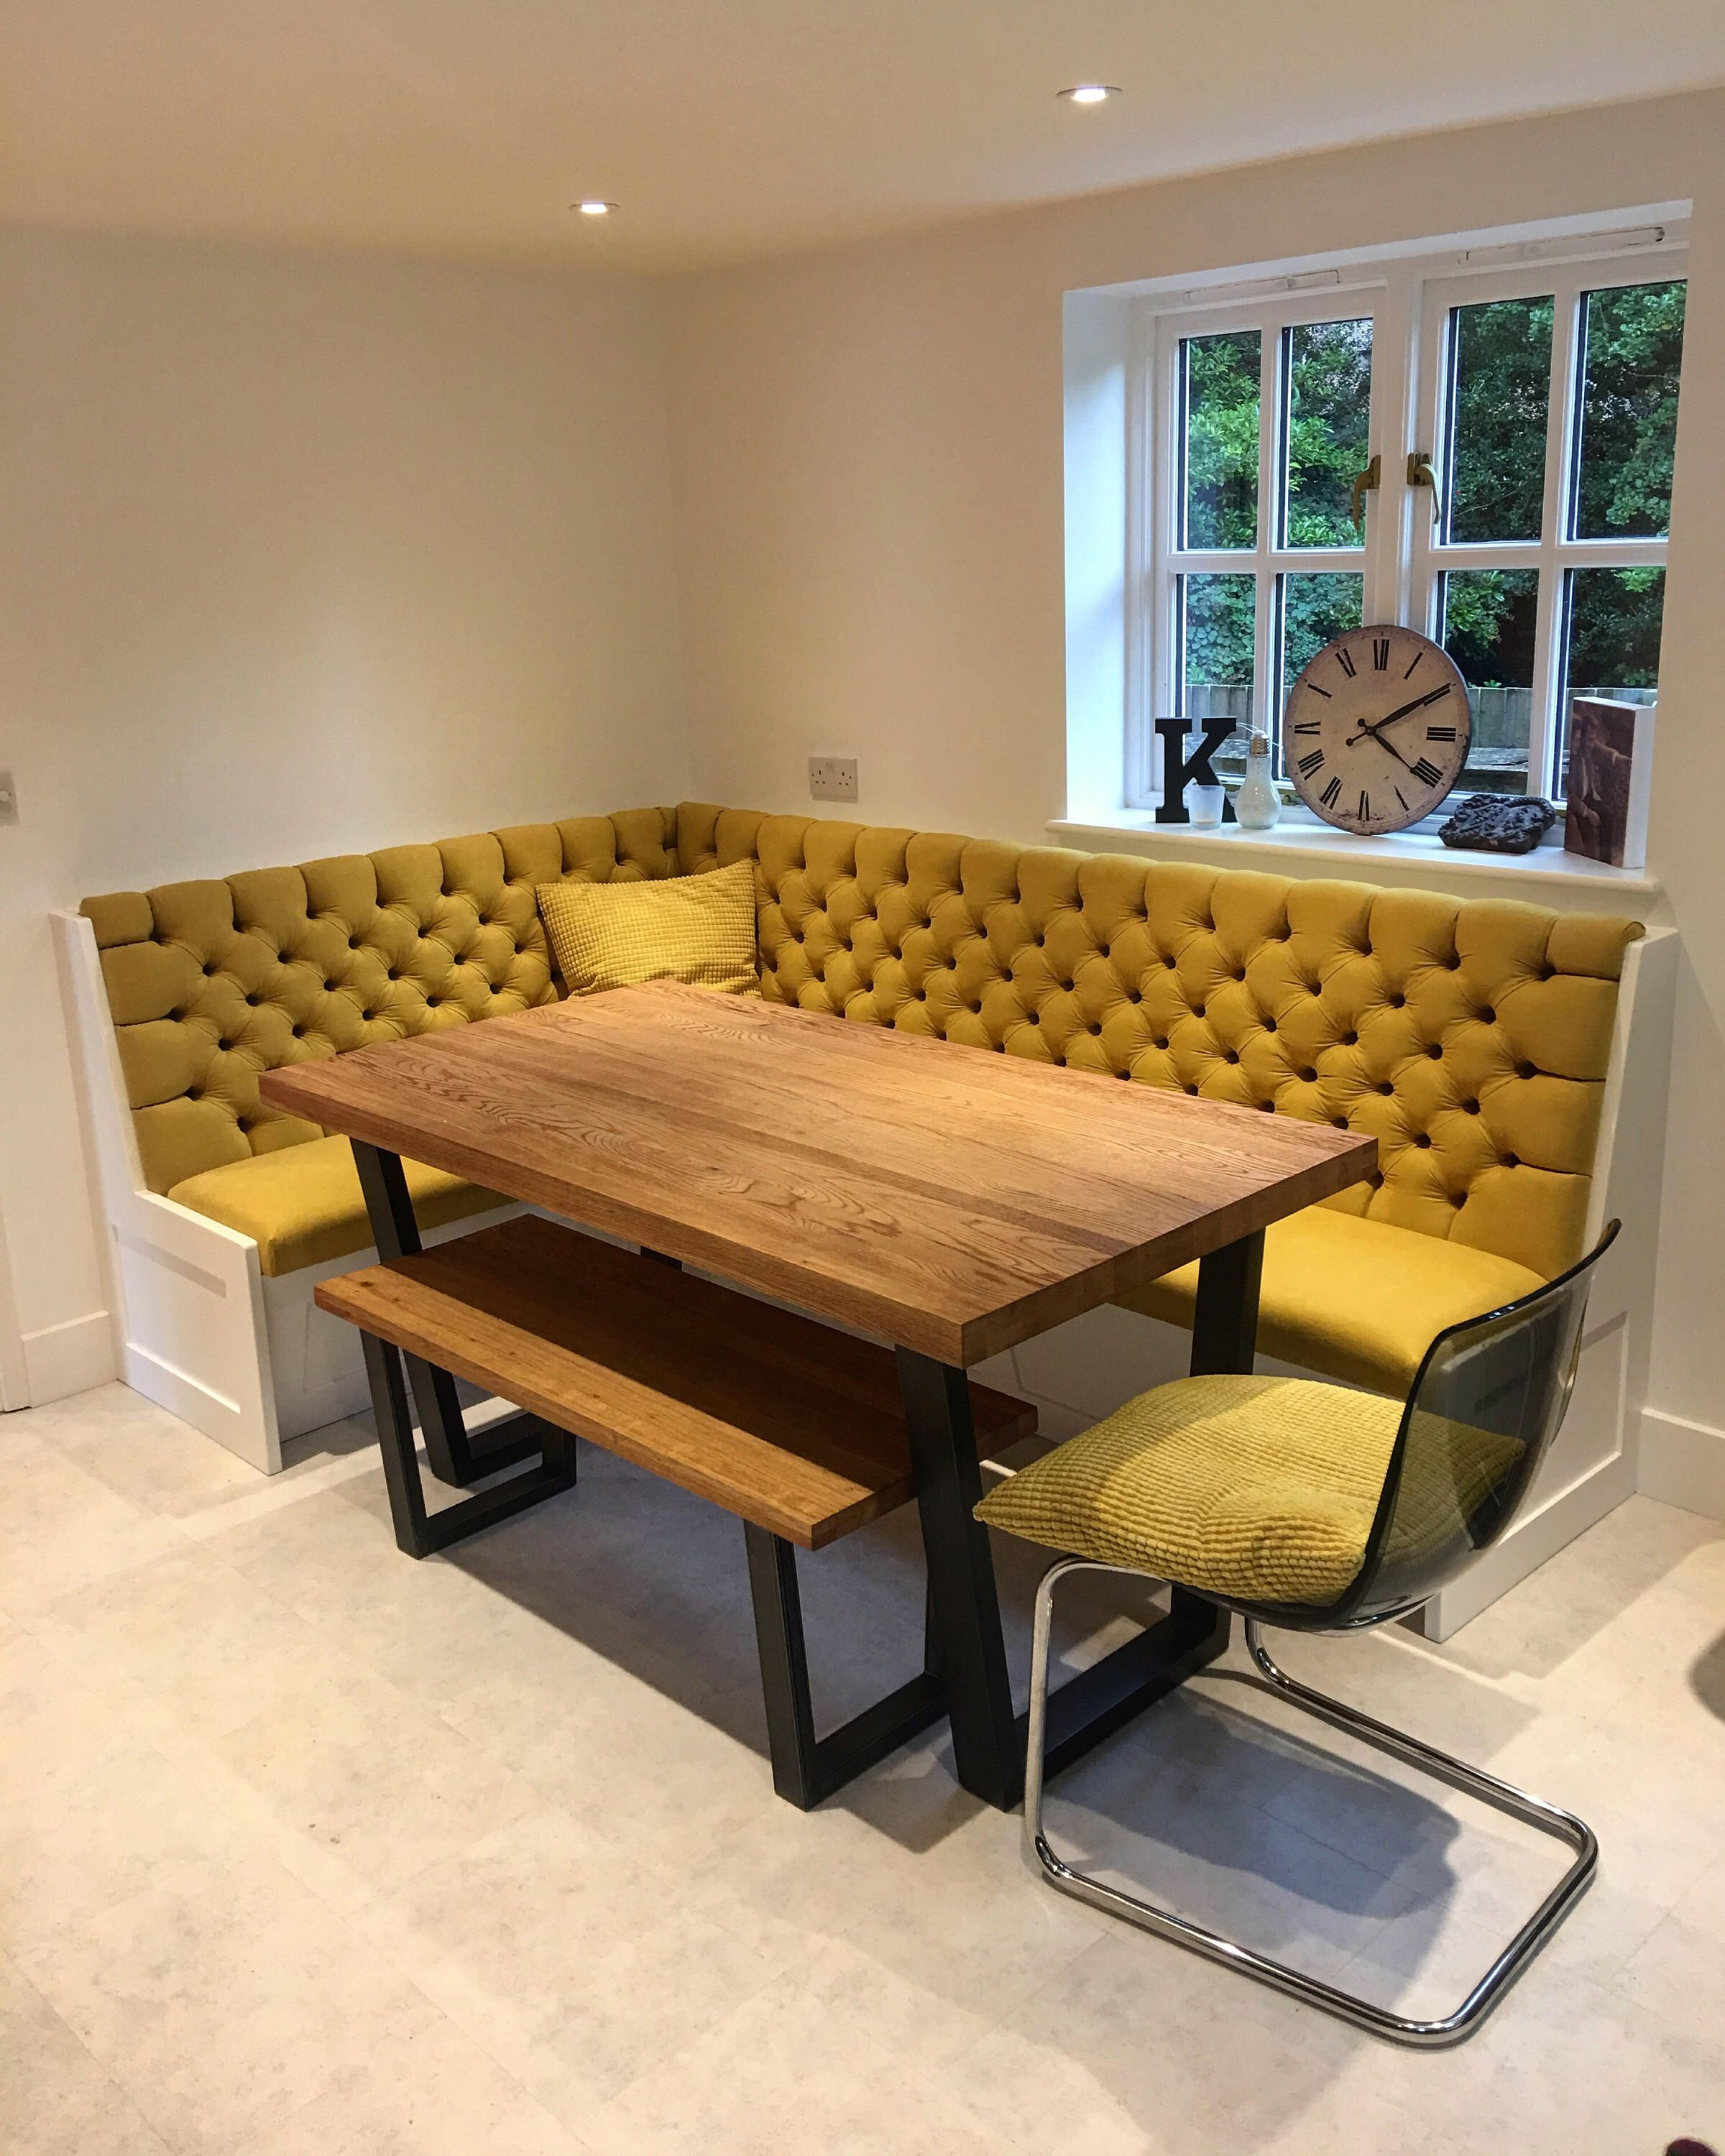 Bespoke banquette seating deep buttoned undercover storage by